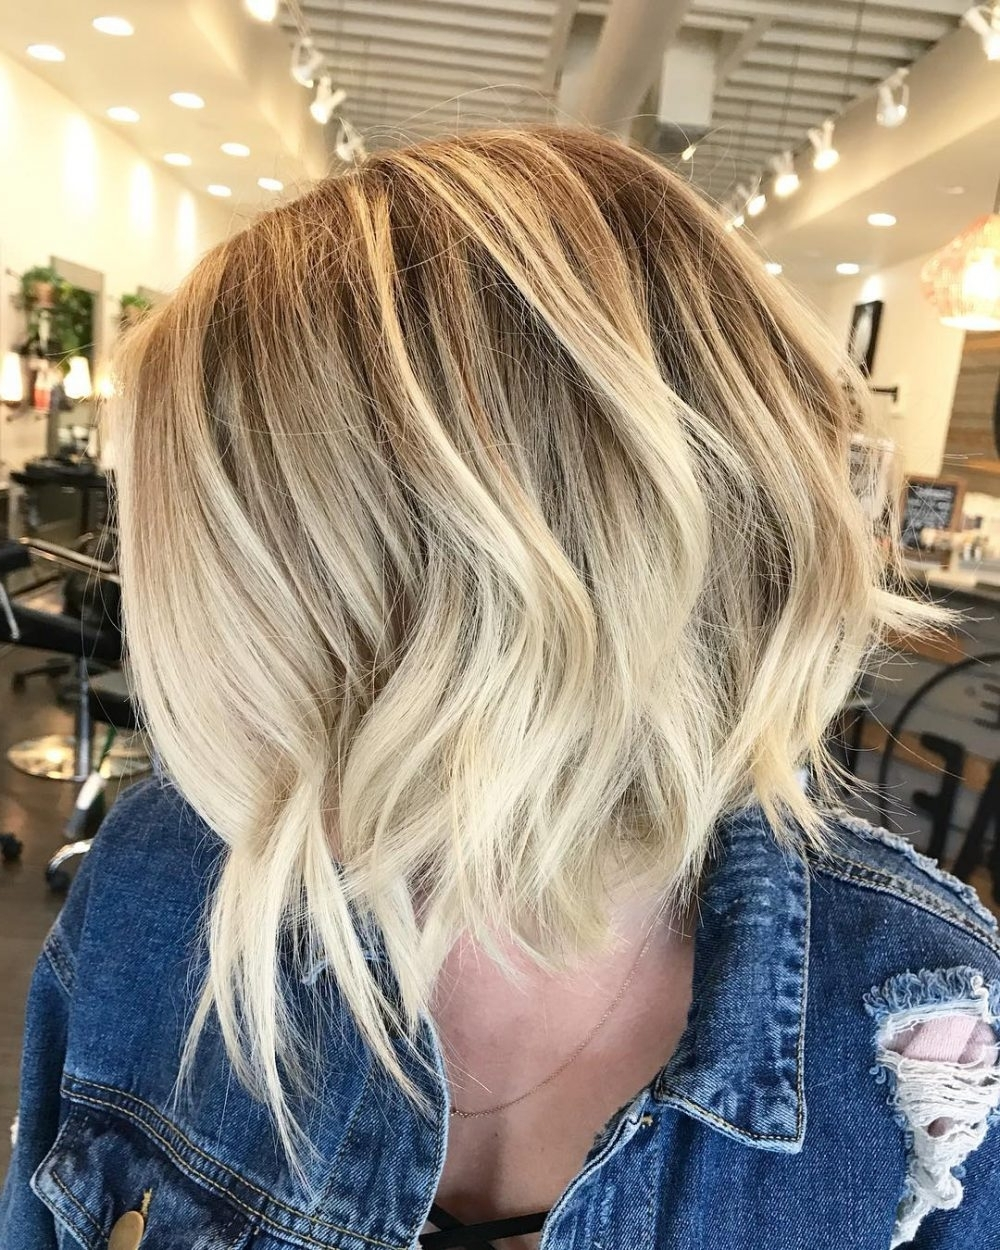 Preferred Fresh And Flirty Layered Blonde Hairstyles For 34 Best Choppy Layered Hairstyles (Anyone Can Pull Off) (View 14 of 20)